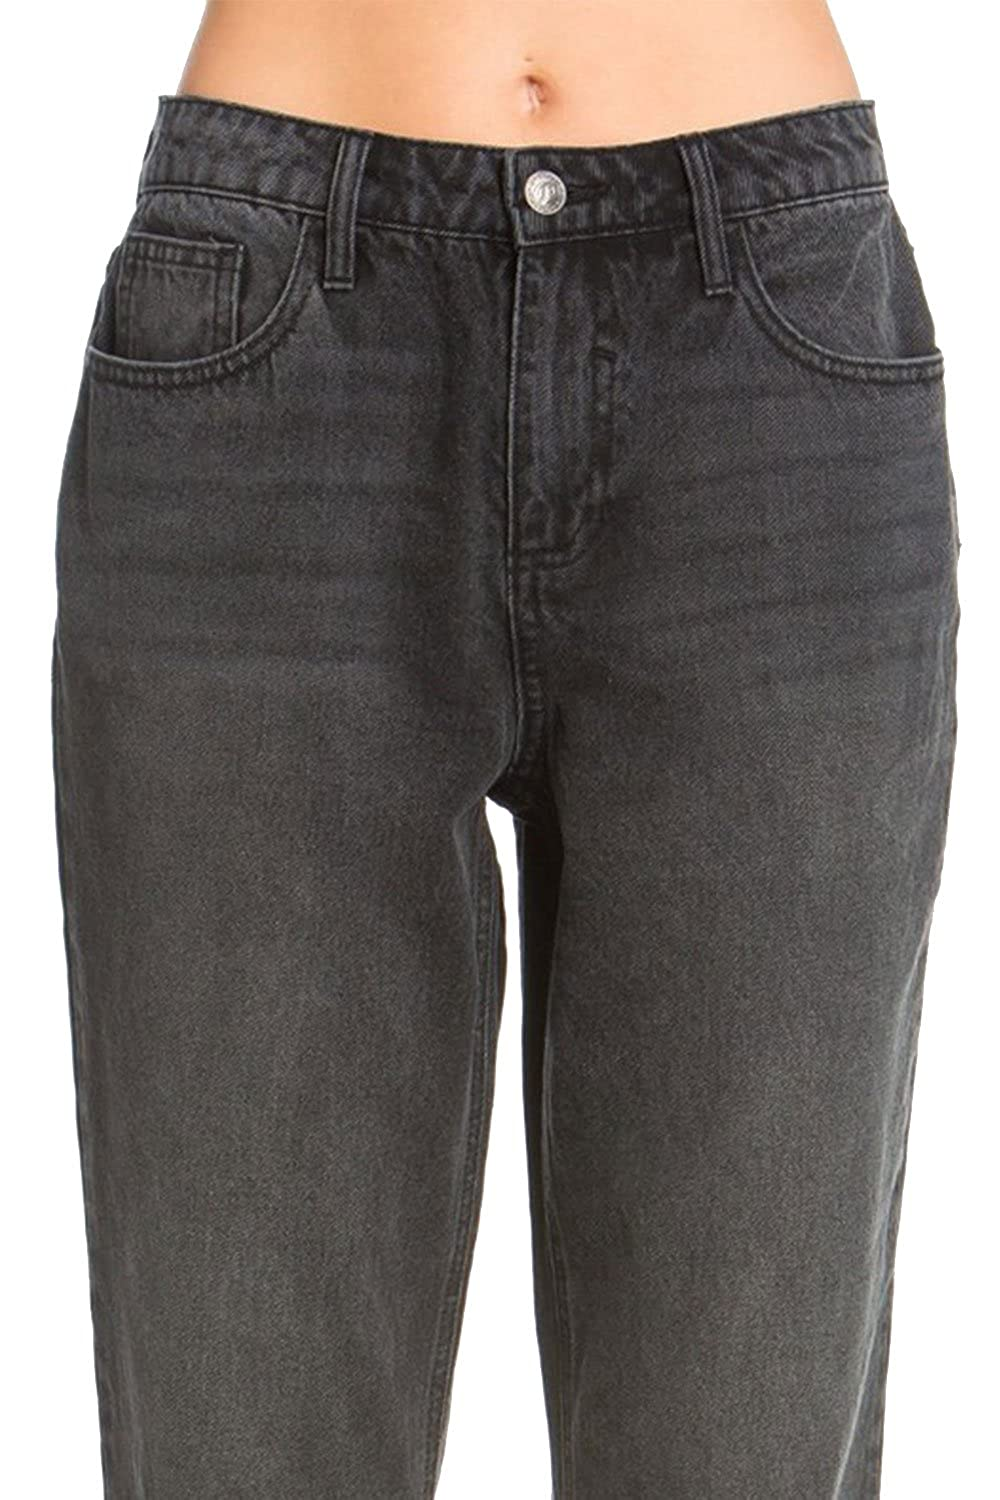 GENx Womens Casual High Rise Double Rolled Jeans Pants AB75794GF 1, Black